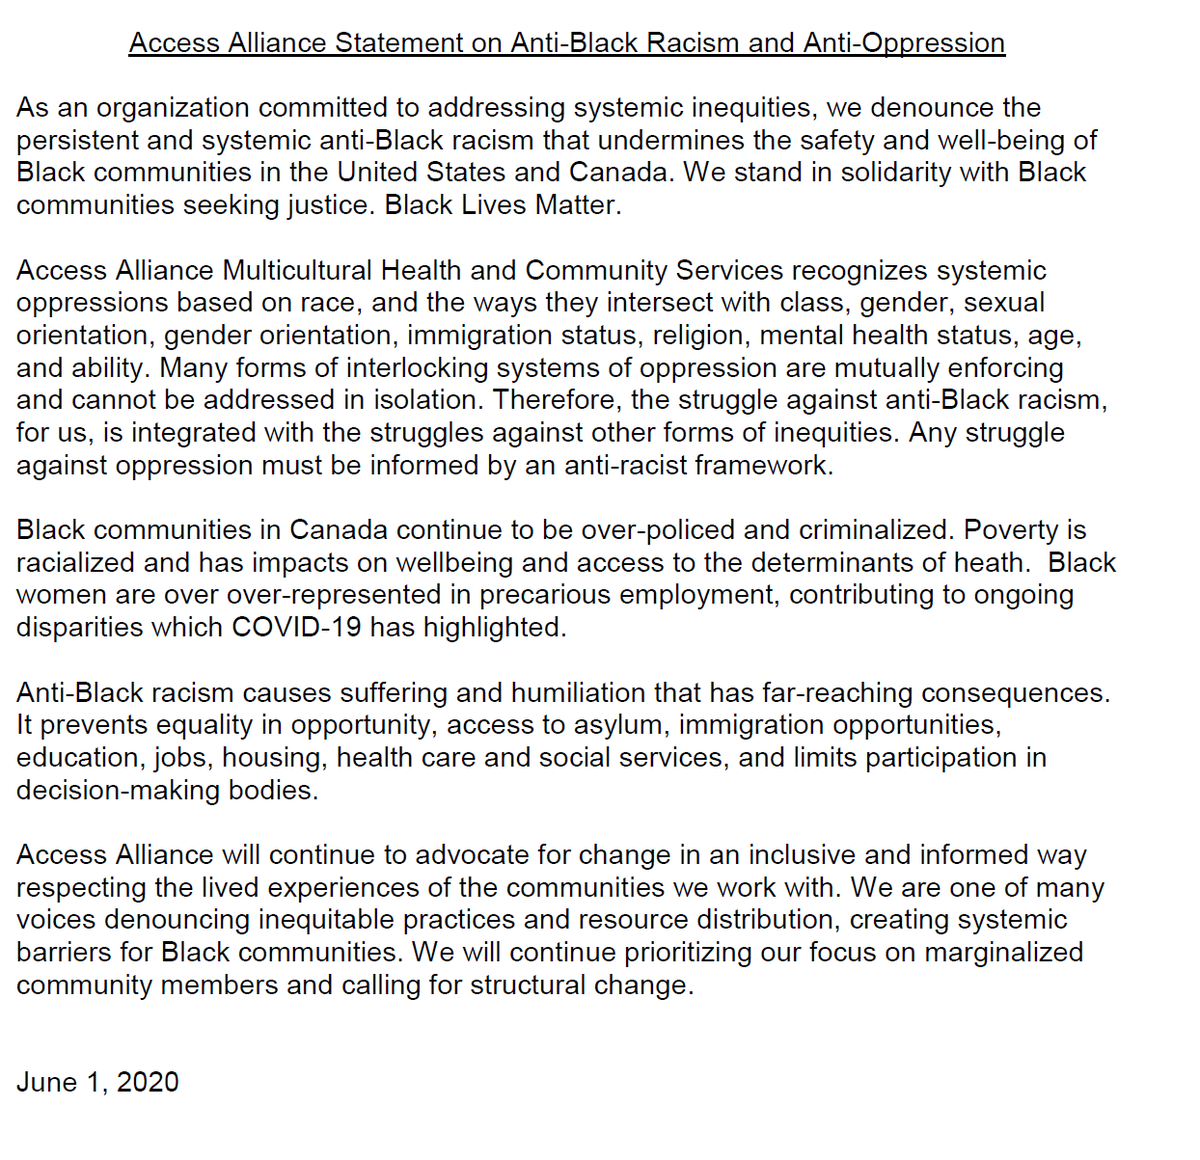 🔴As an organization committed to addressing systemic inequities, we denounce the persistent and systemic anti-Black racism that undermines the safety and well-being of Black communities.  🟠Read & Share: 🟢Access Alliance Statement on Anti-Black Racism and Anti-Oppression